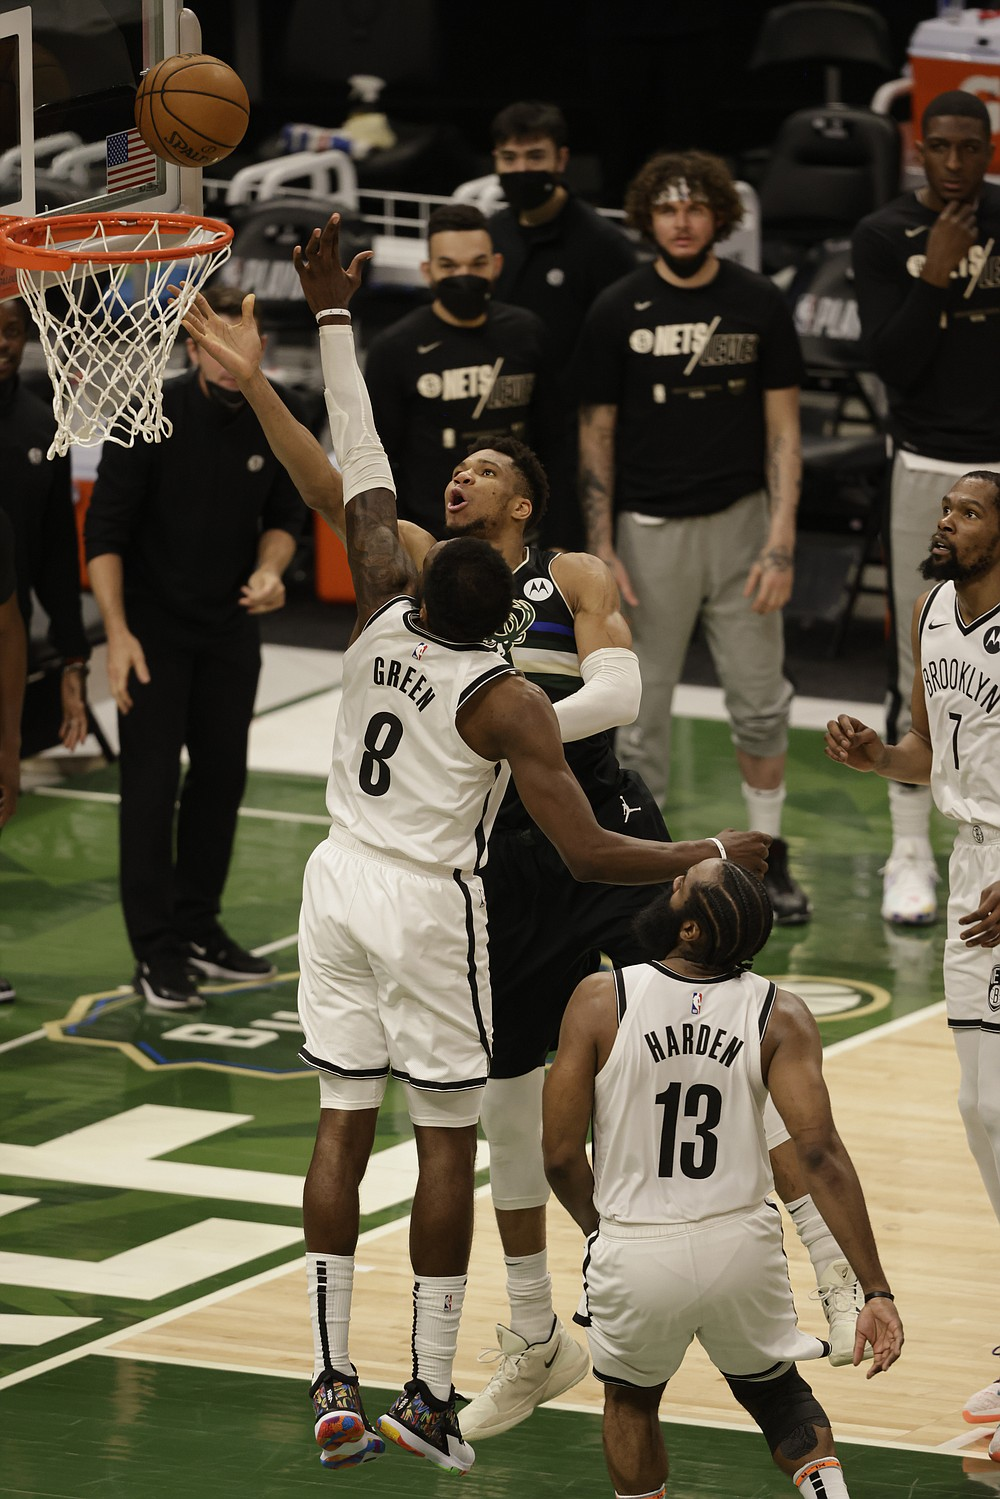 Milwaukee Bucks forward Giannis Antetokounmpo (34) shoots against Brooklyn Nets forward Jeff Green (8) during the second half of Game 6 of a second-round NBA basketball playoff series Thursday, June 17, 2021, in Milwaukee. (AP Photo/Jeffrey Phelps)